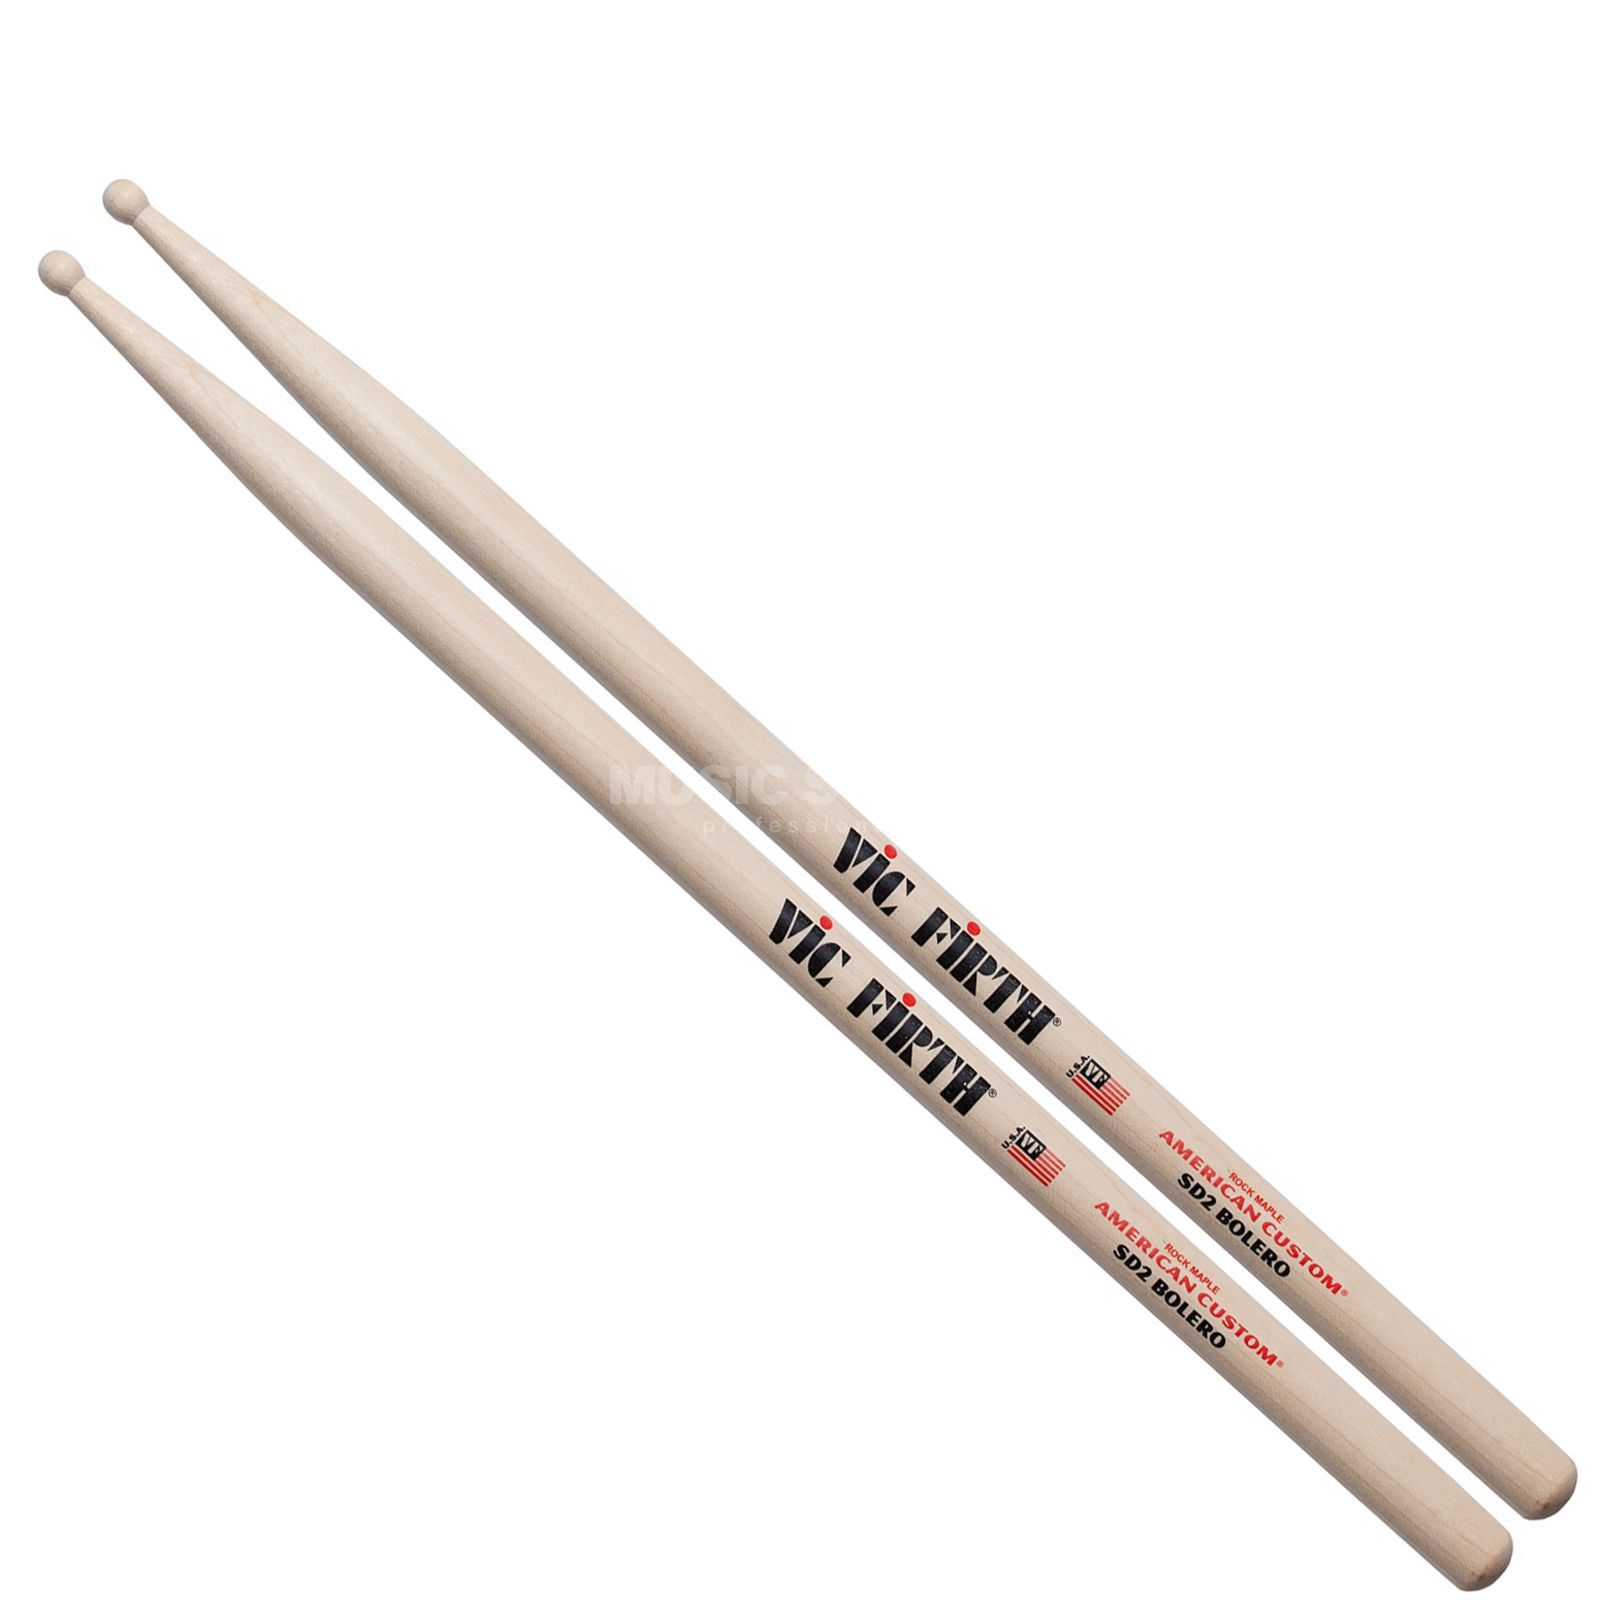 Vic-Firth SD2 Bolero Sticks, American Custom, Wood Tip Produktbild